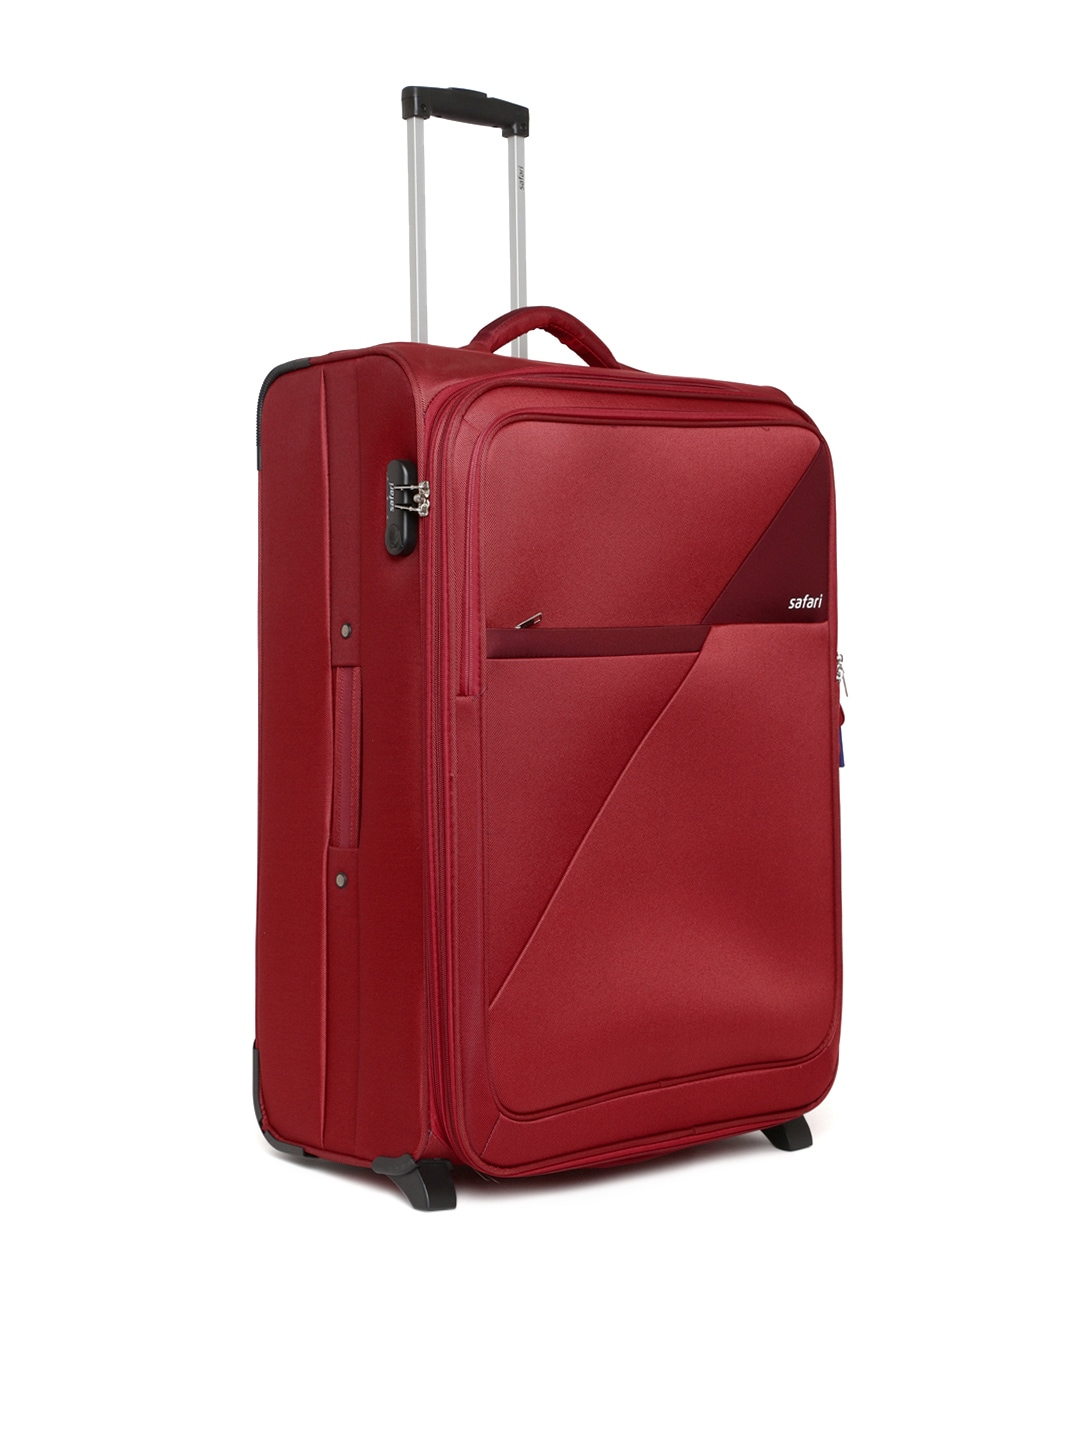 Luggage Trolley Bag Mc Luggage